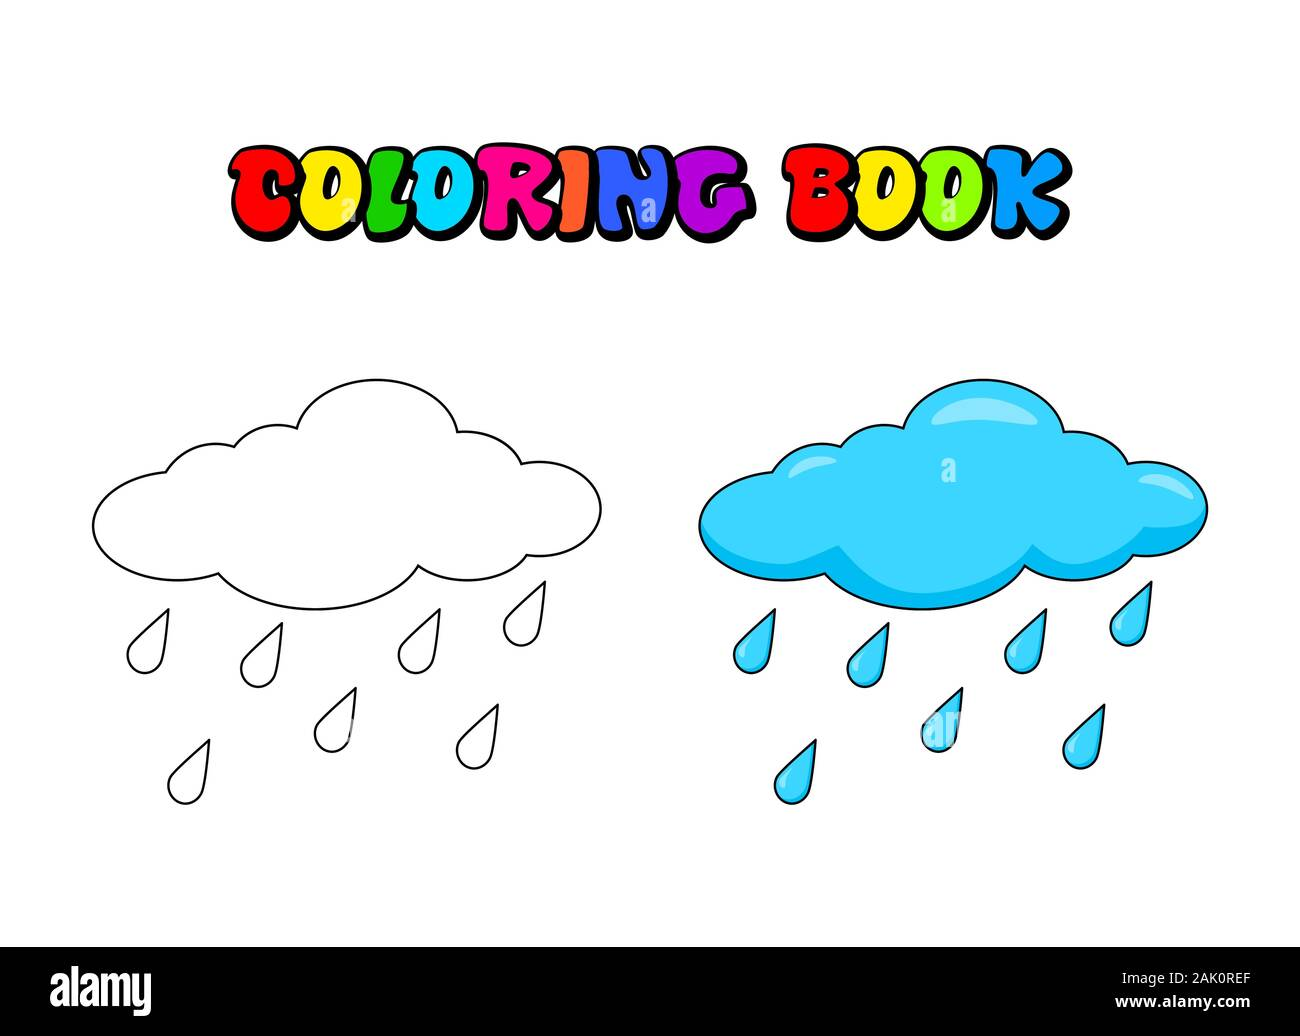 Cloud With Rain Drops Coloring Book For Children Vector Water Drops Outline Illustration Weather Forecast Coloring Page For Preschool Kids Stock Vector Image Art Alamy